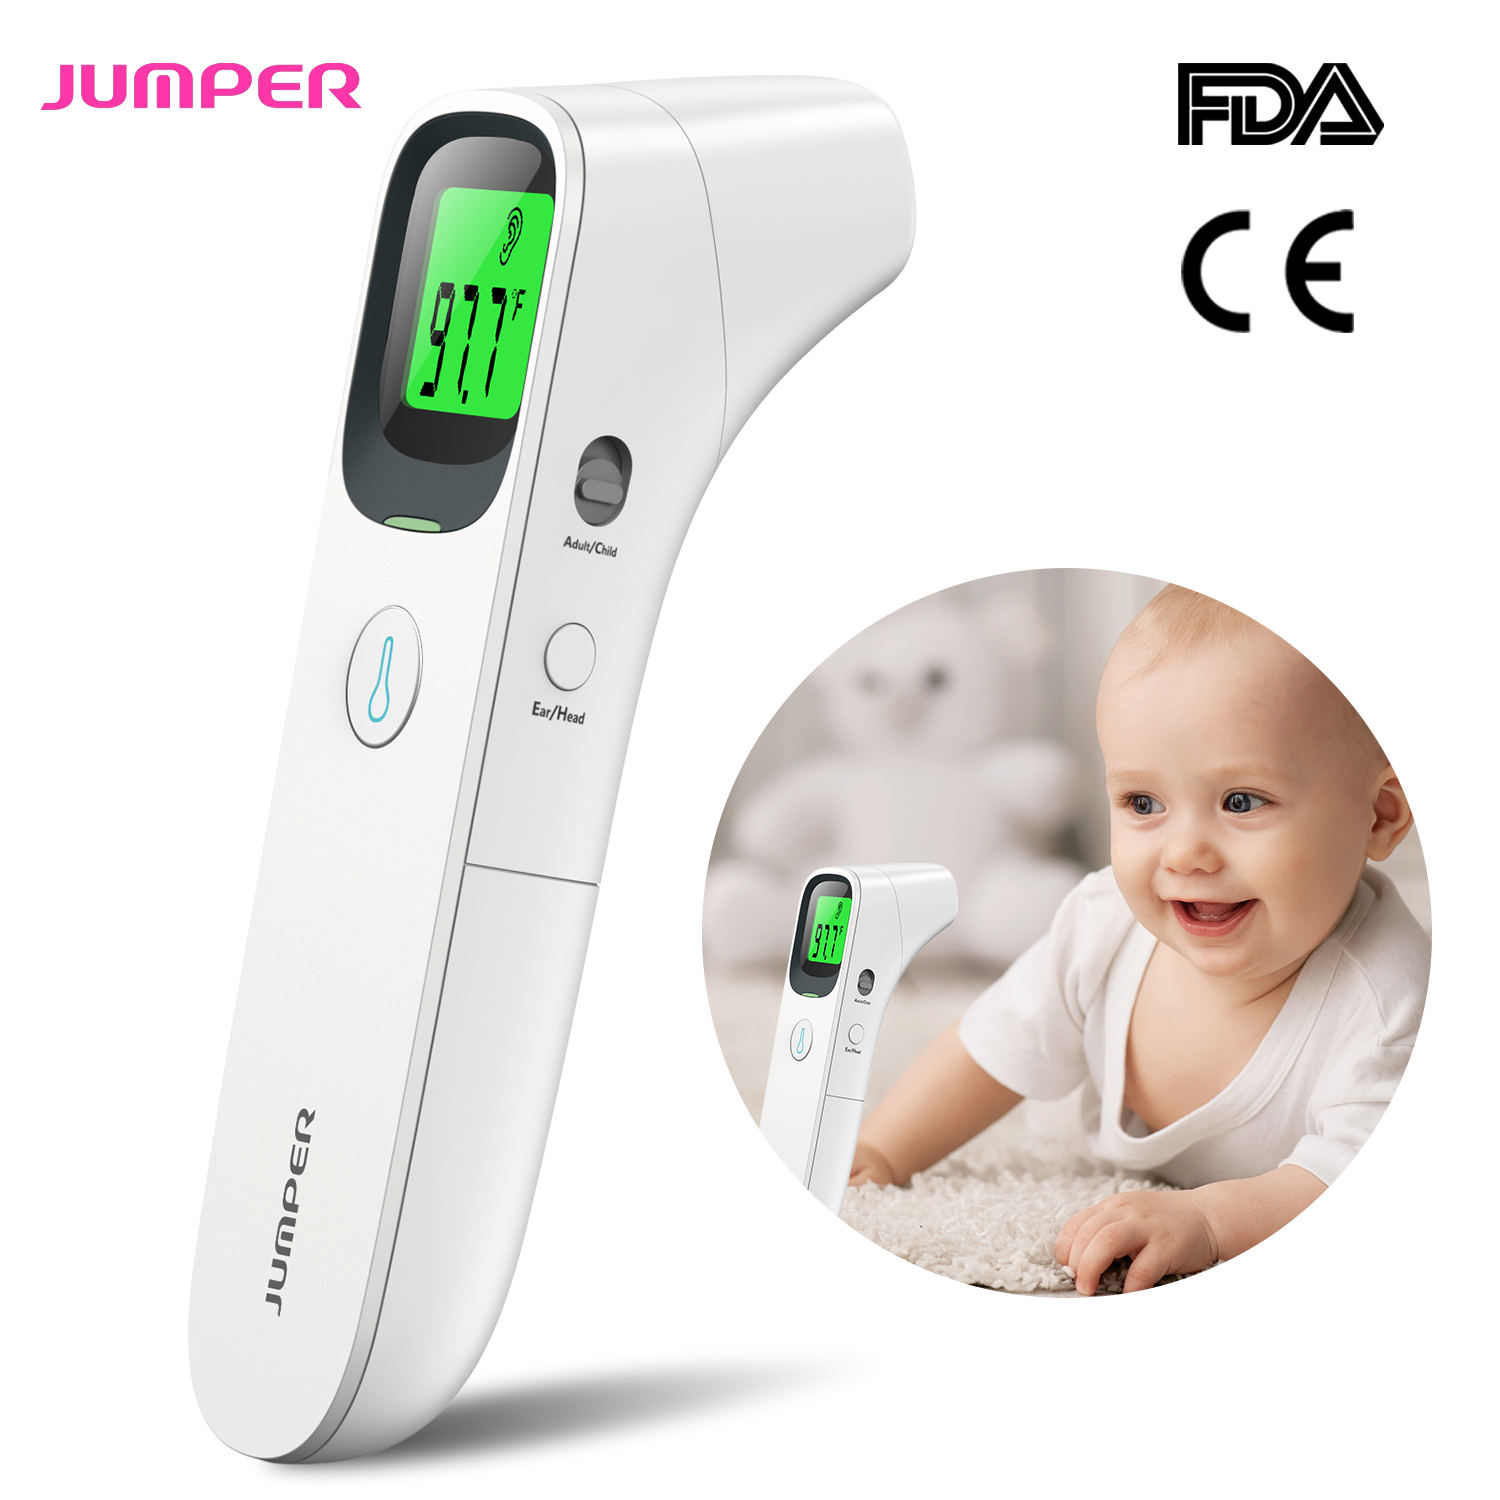 Blue Infrared Forehead Thermometer for Adults Kids Baby Infrared Digital Non-Contact Accurate Instant Readings Forehead Thermometer with LCD Display No Touch